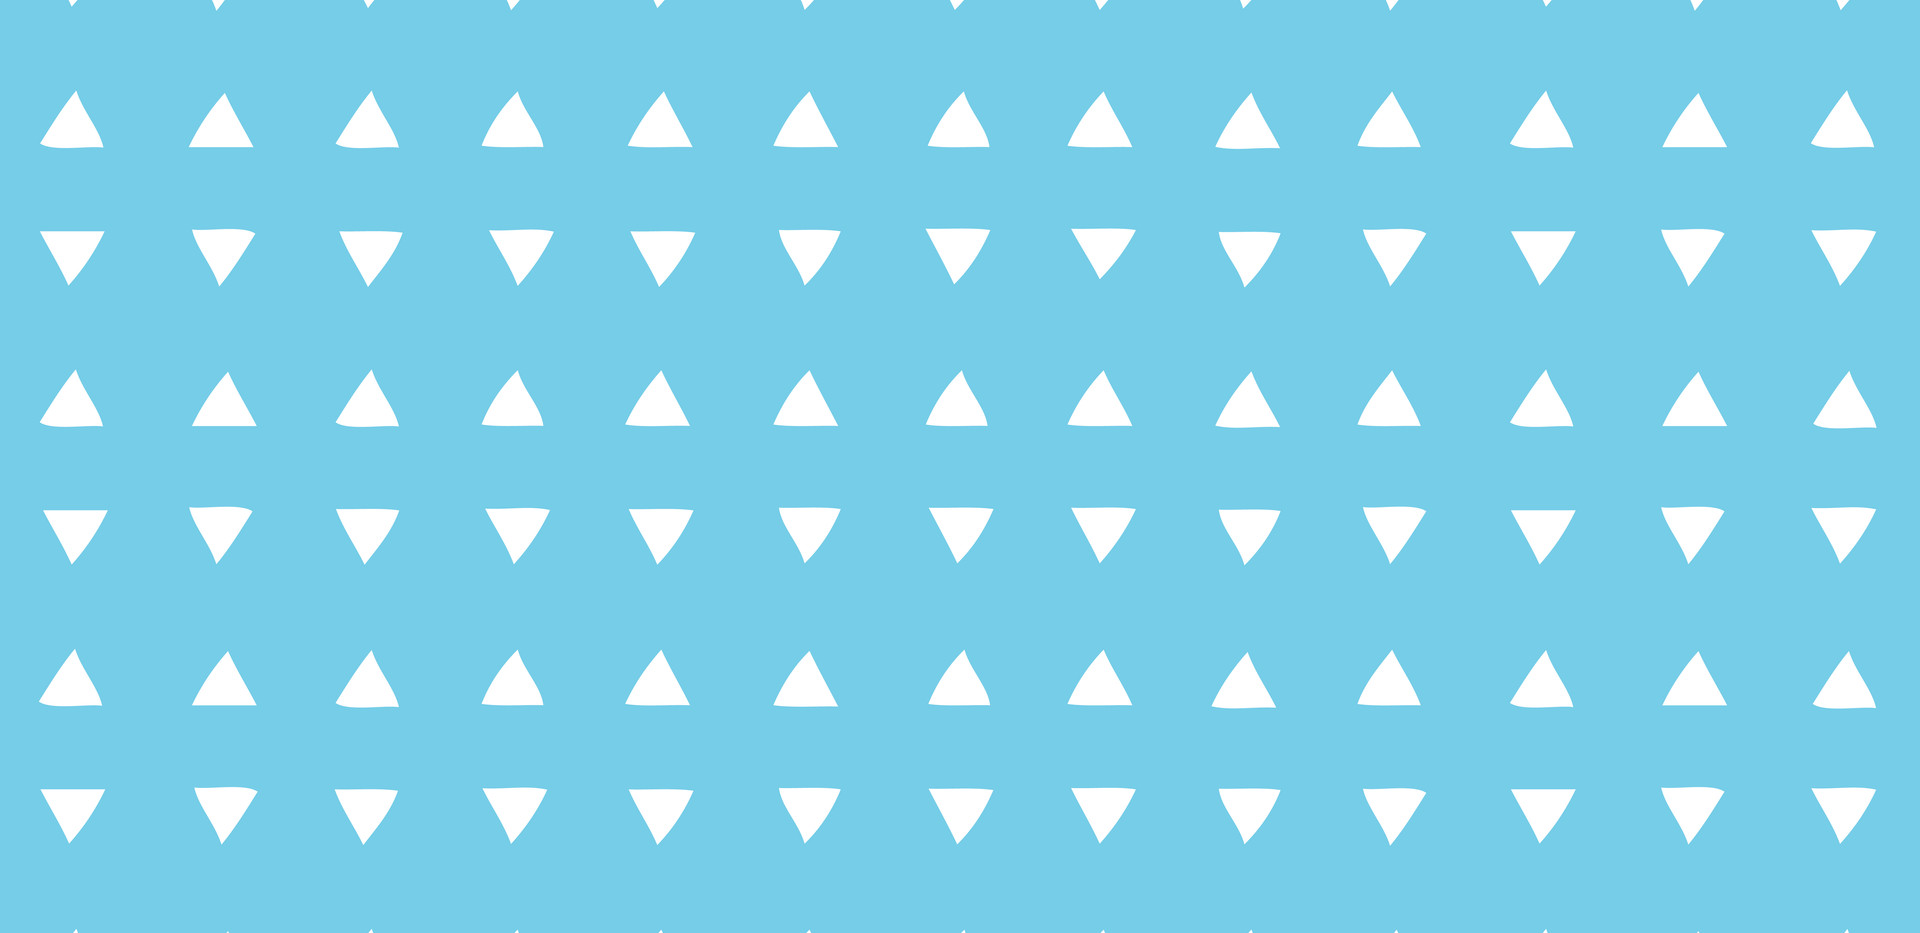 Tiny Triangles . Perfect Turquoise